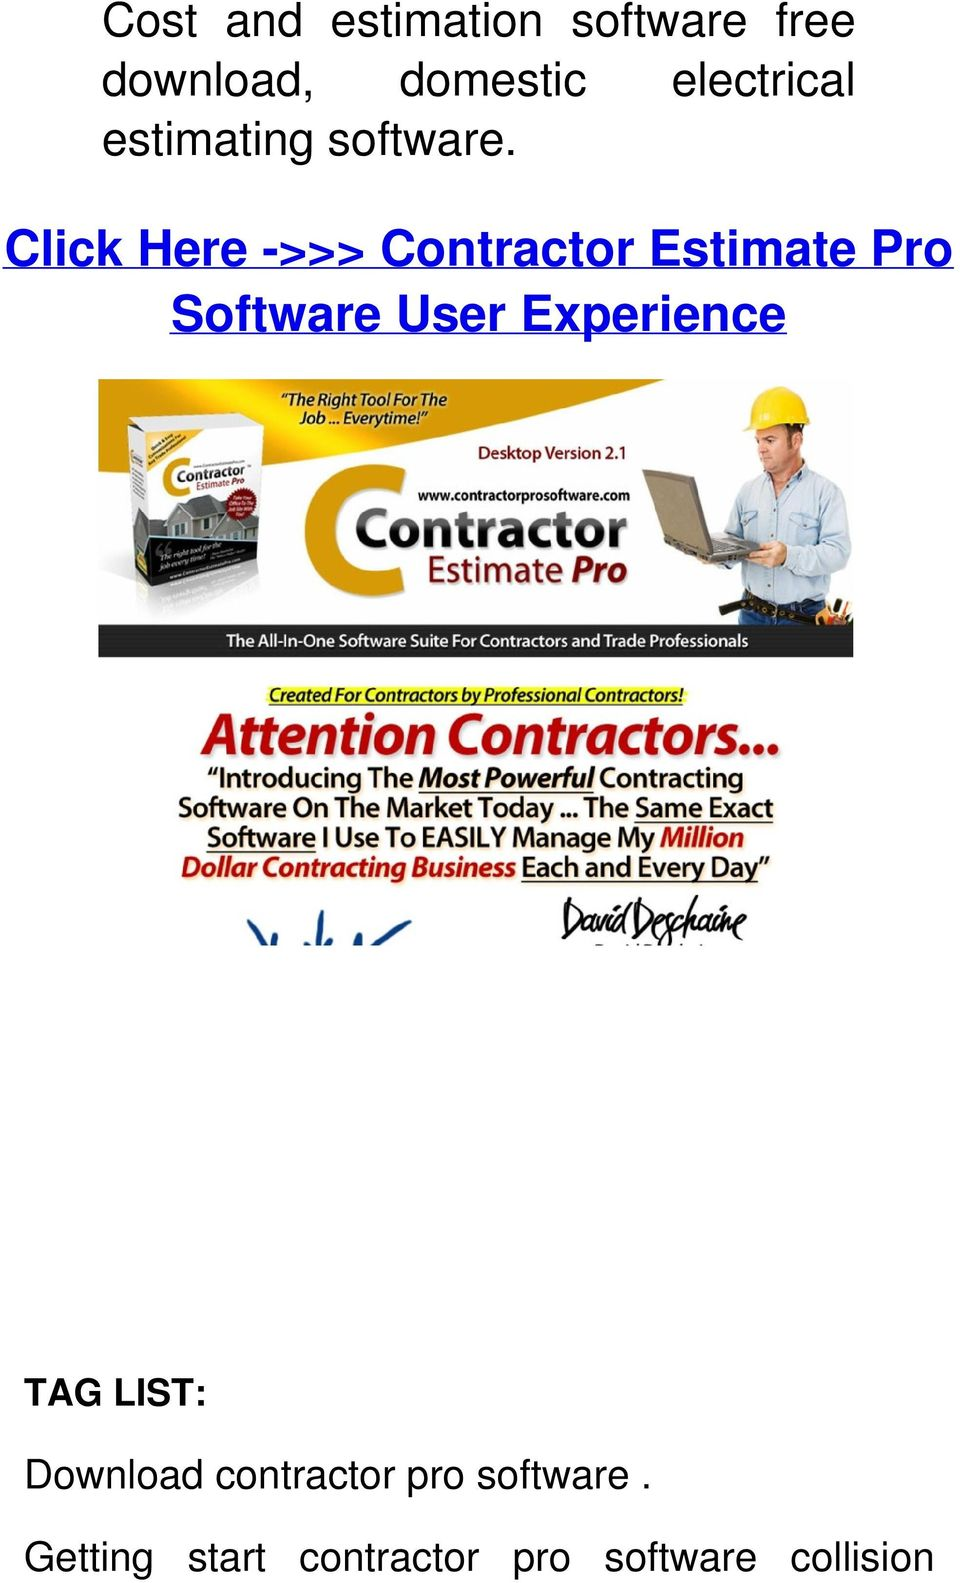 Click Here ->>> Contractor Estimate Pro Software User